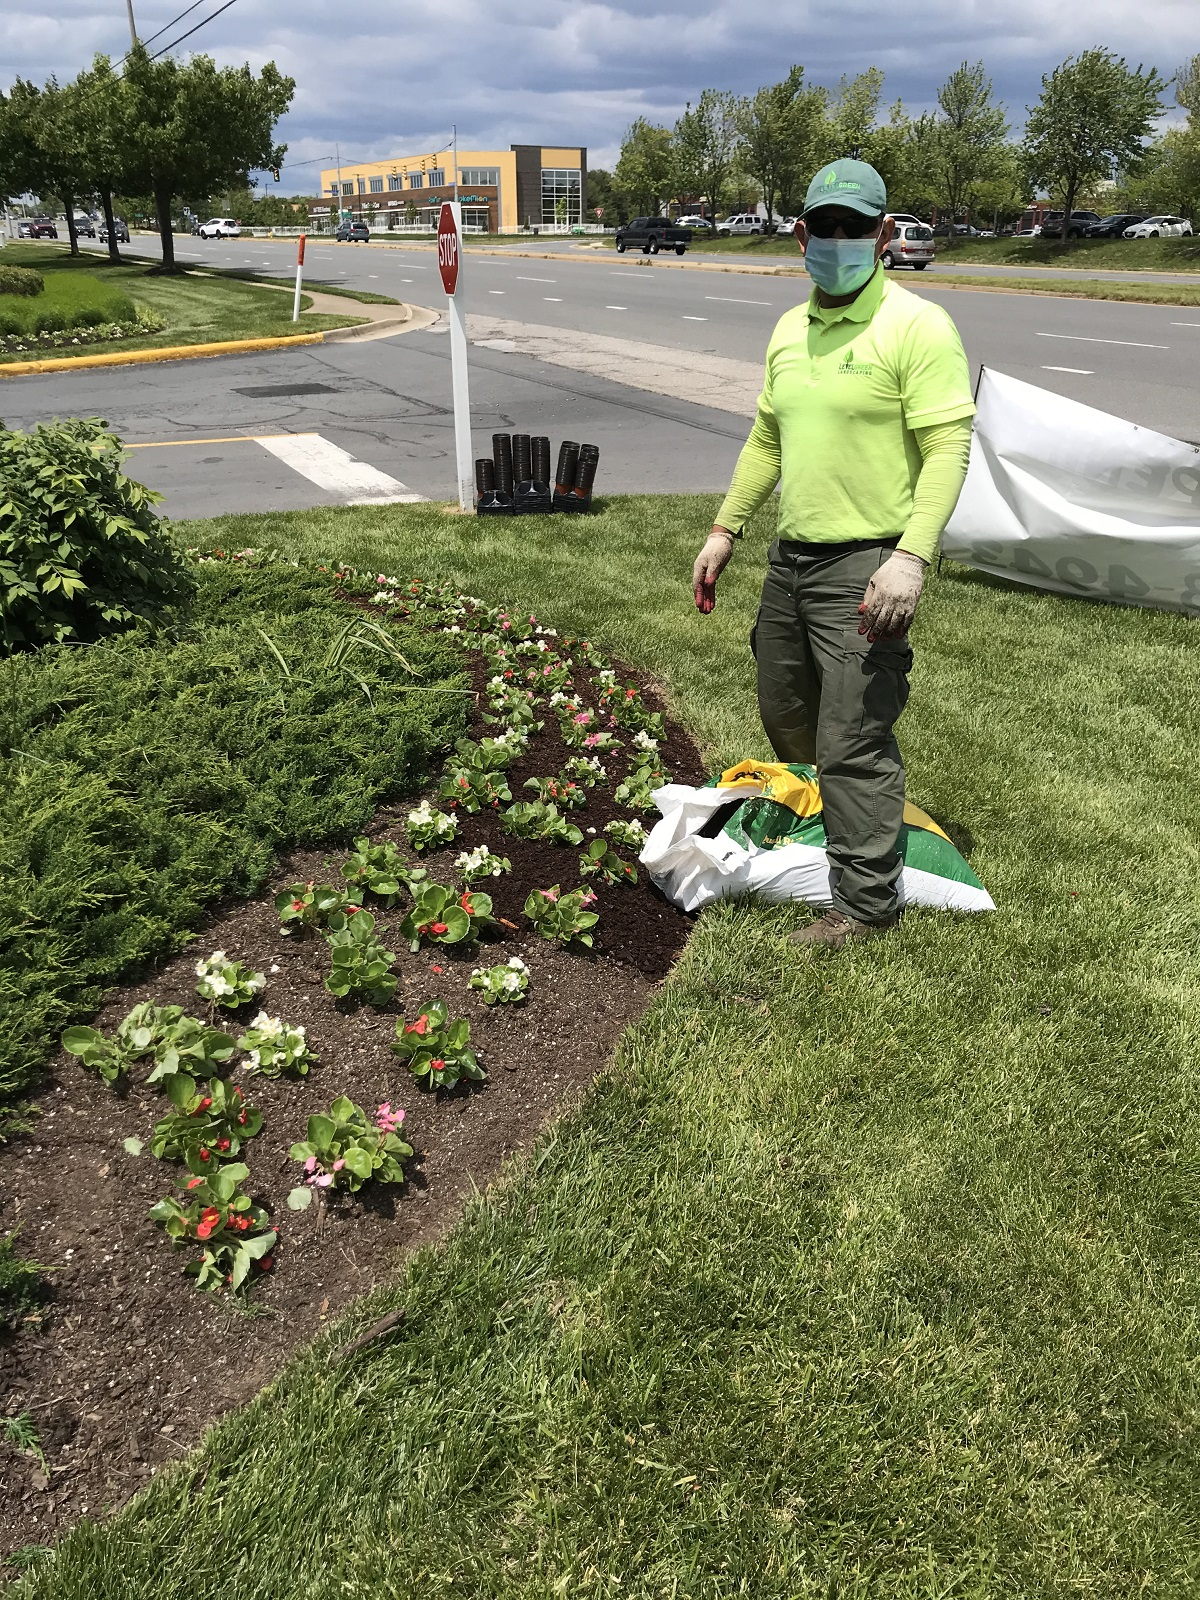 Level Green Landscaping crew member with face mask